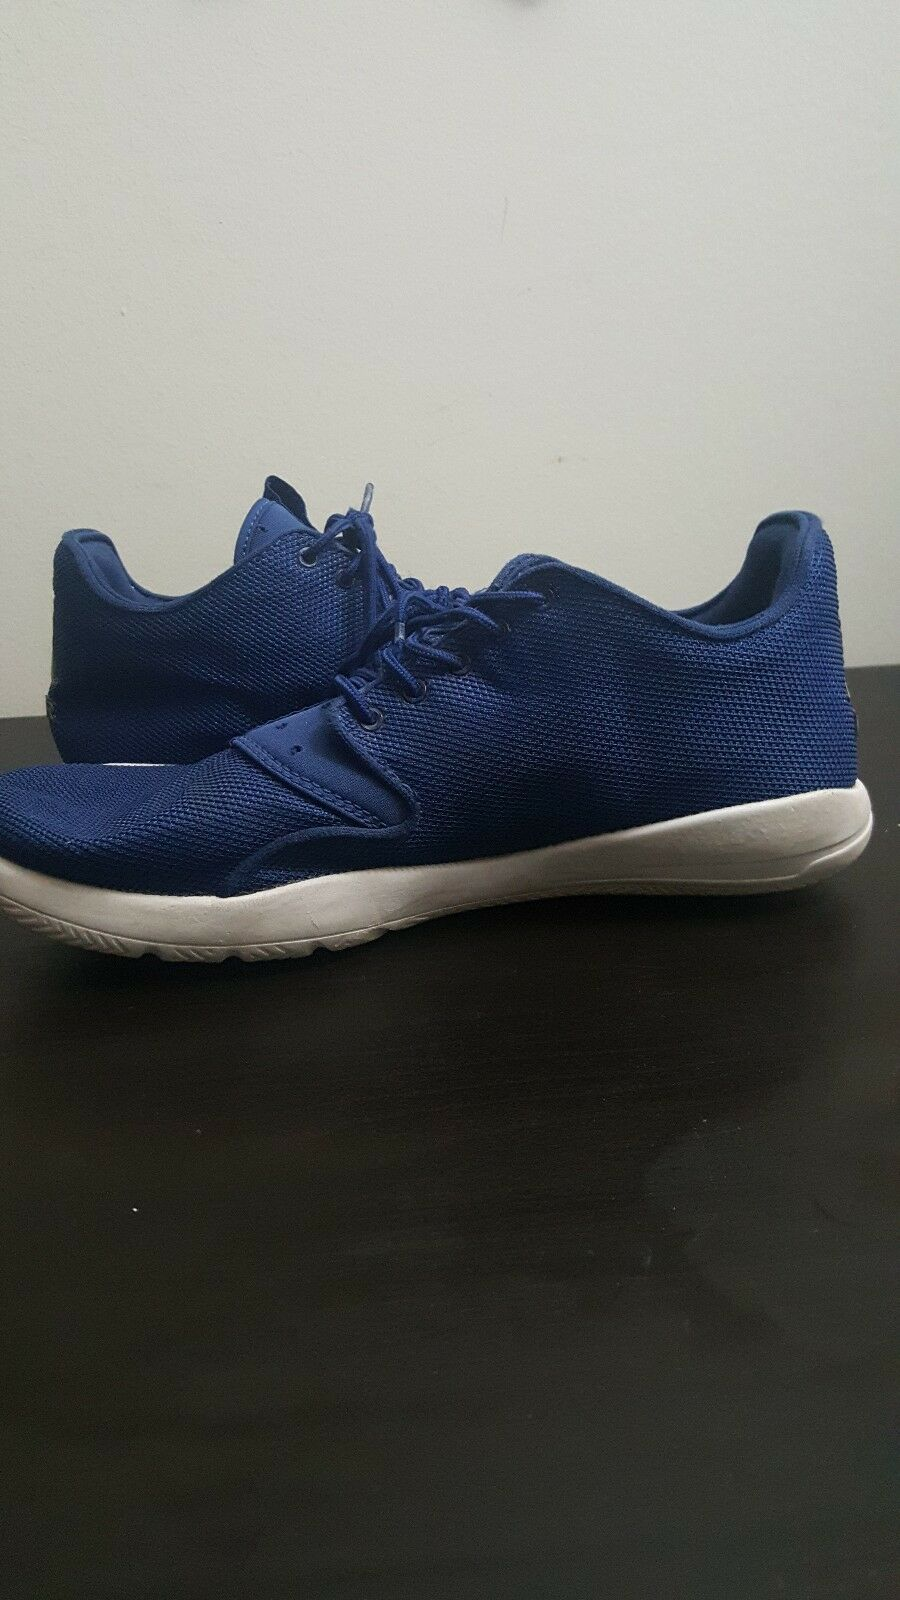 mens jordan eclipse size 8/ with insole best-selling model of the brand